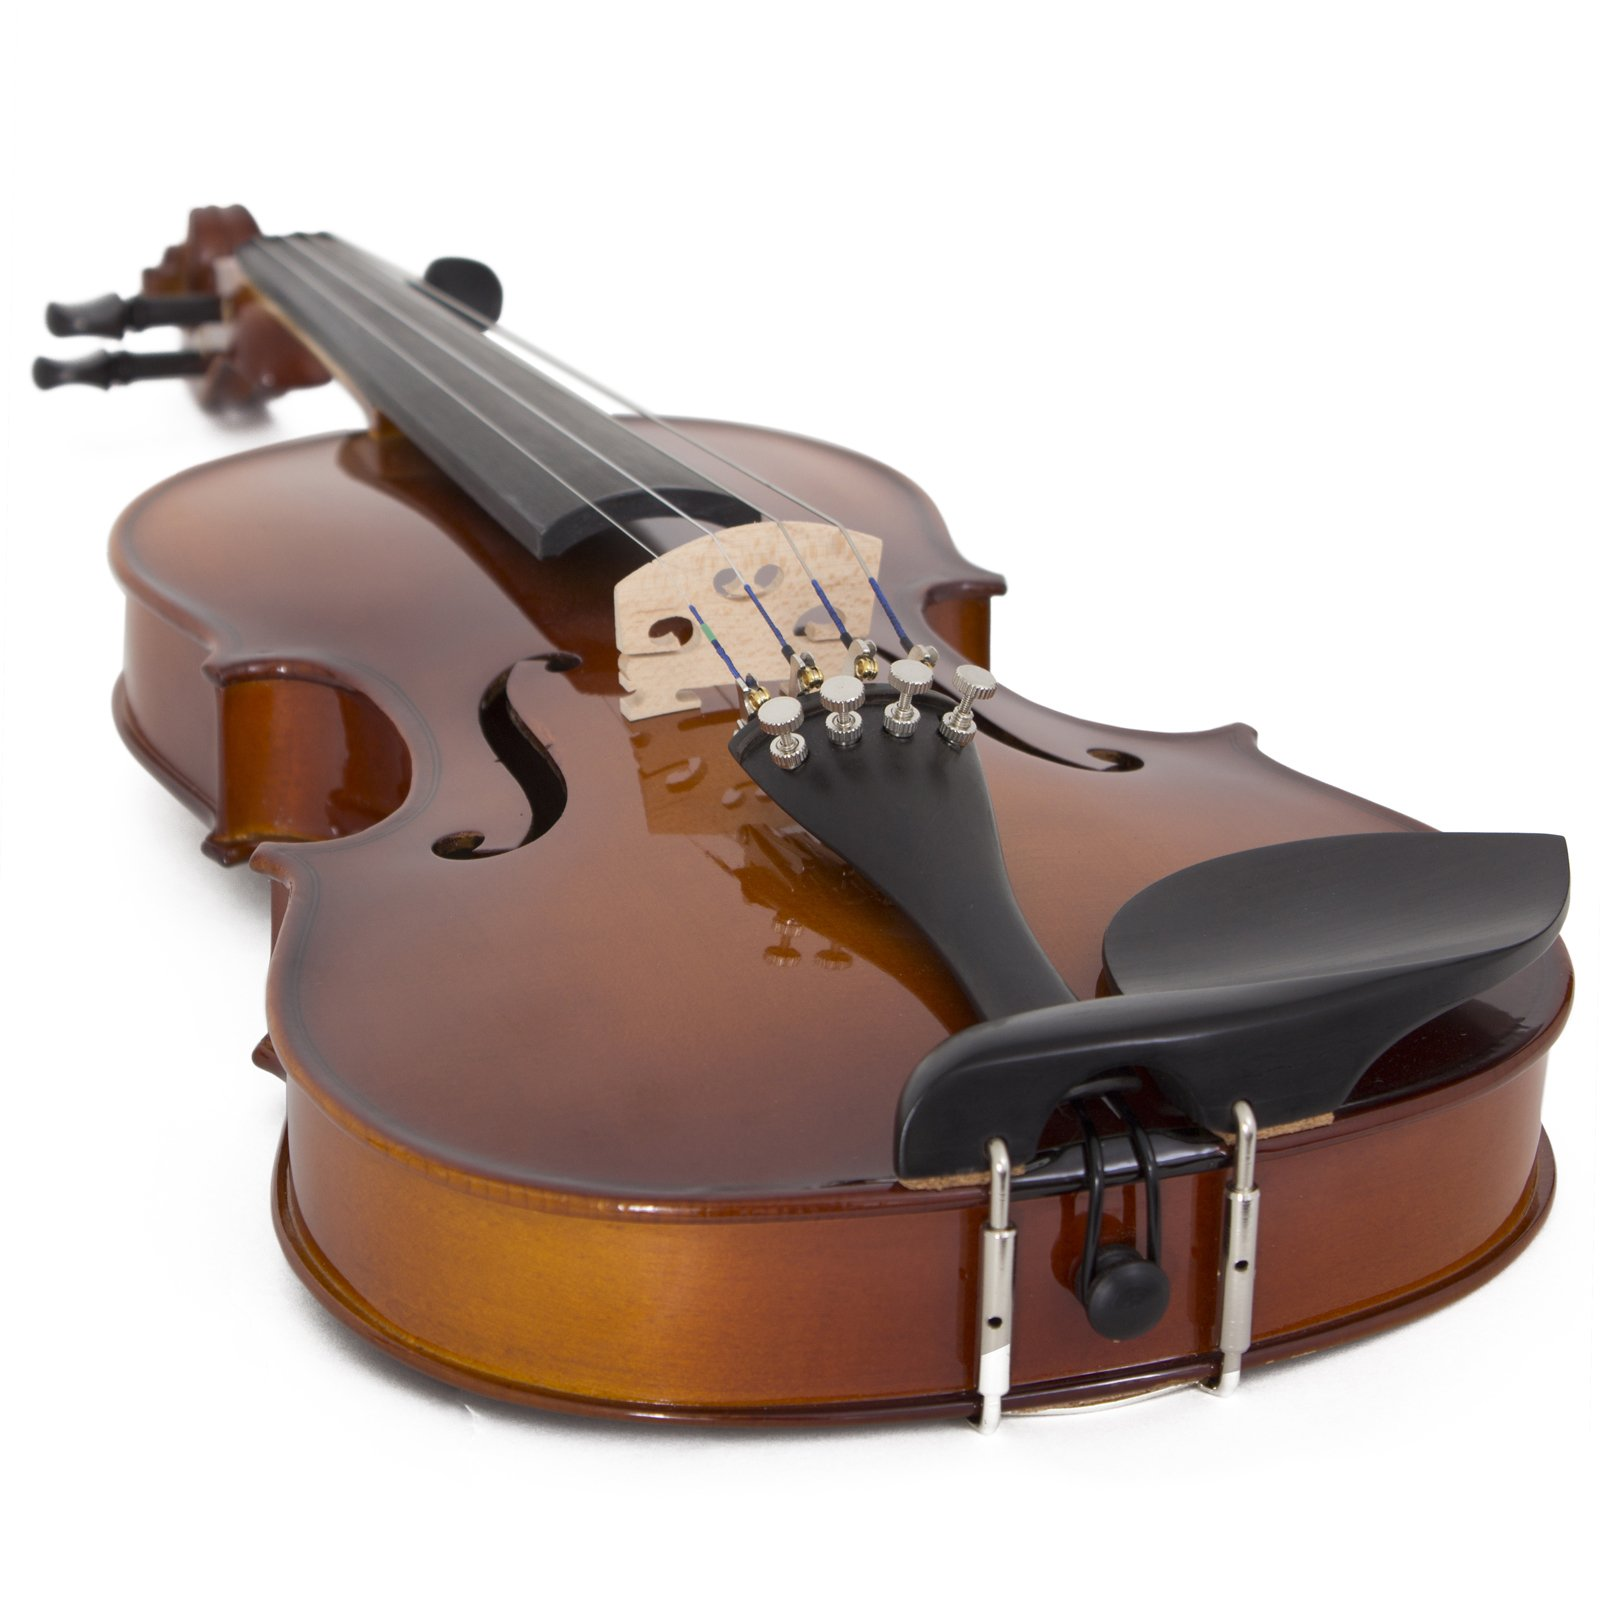 Cecilio CVN-320L Solidwood Ebony Fitted Left-Handed Violin with D'Addario Prelude Strings, Size 4/4 (Full Size) by Cecilio (Image #5)